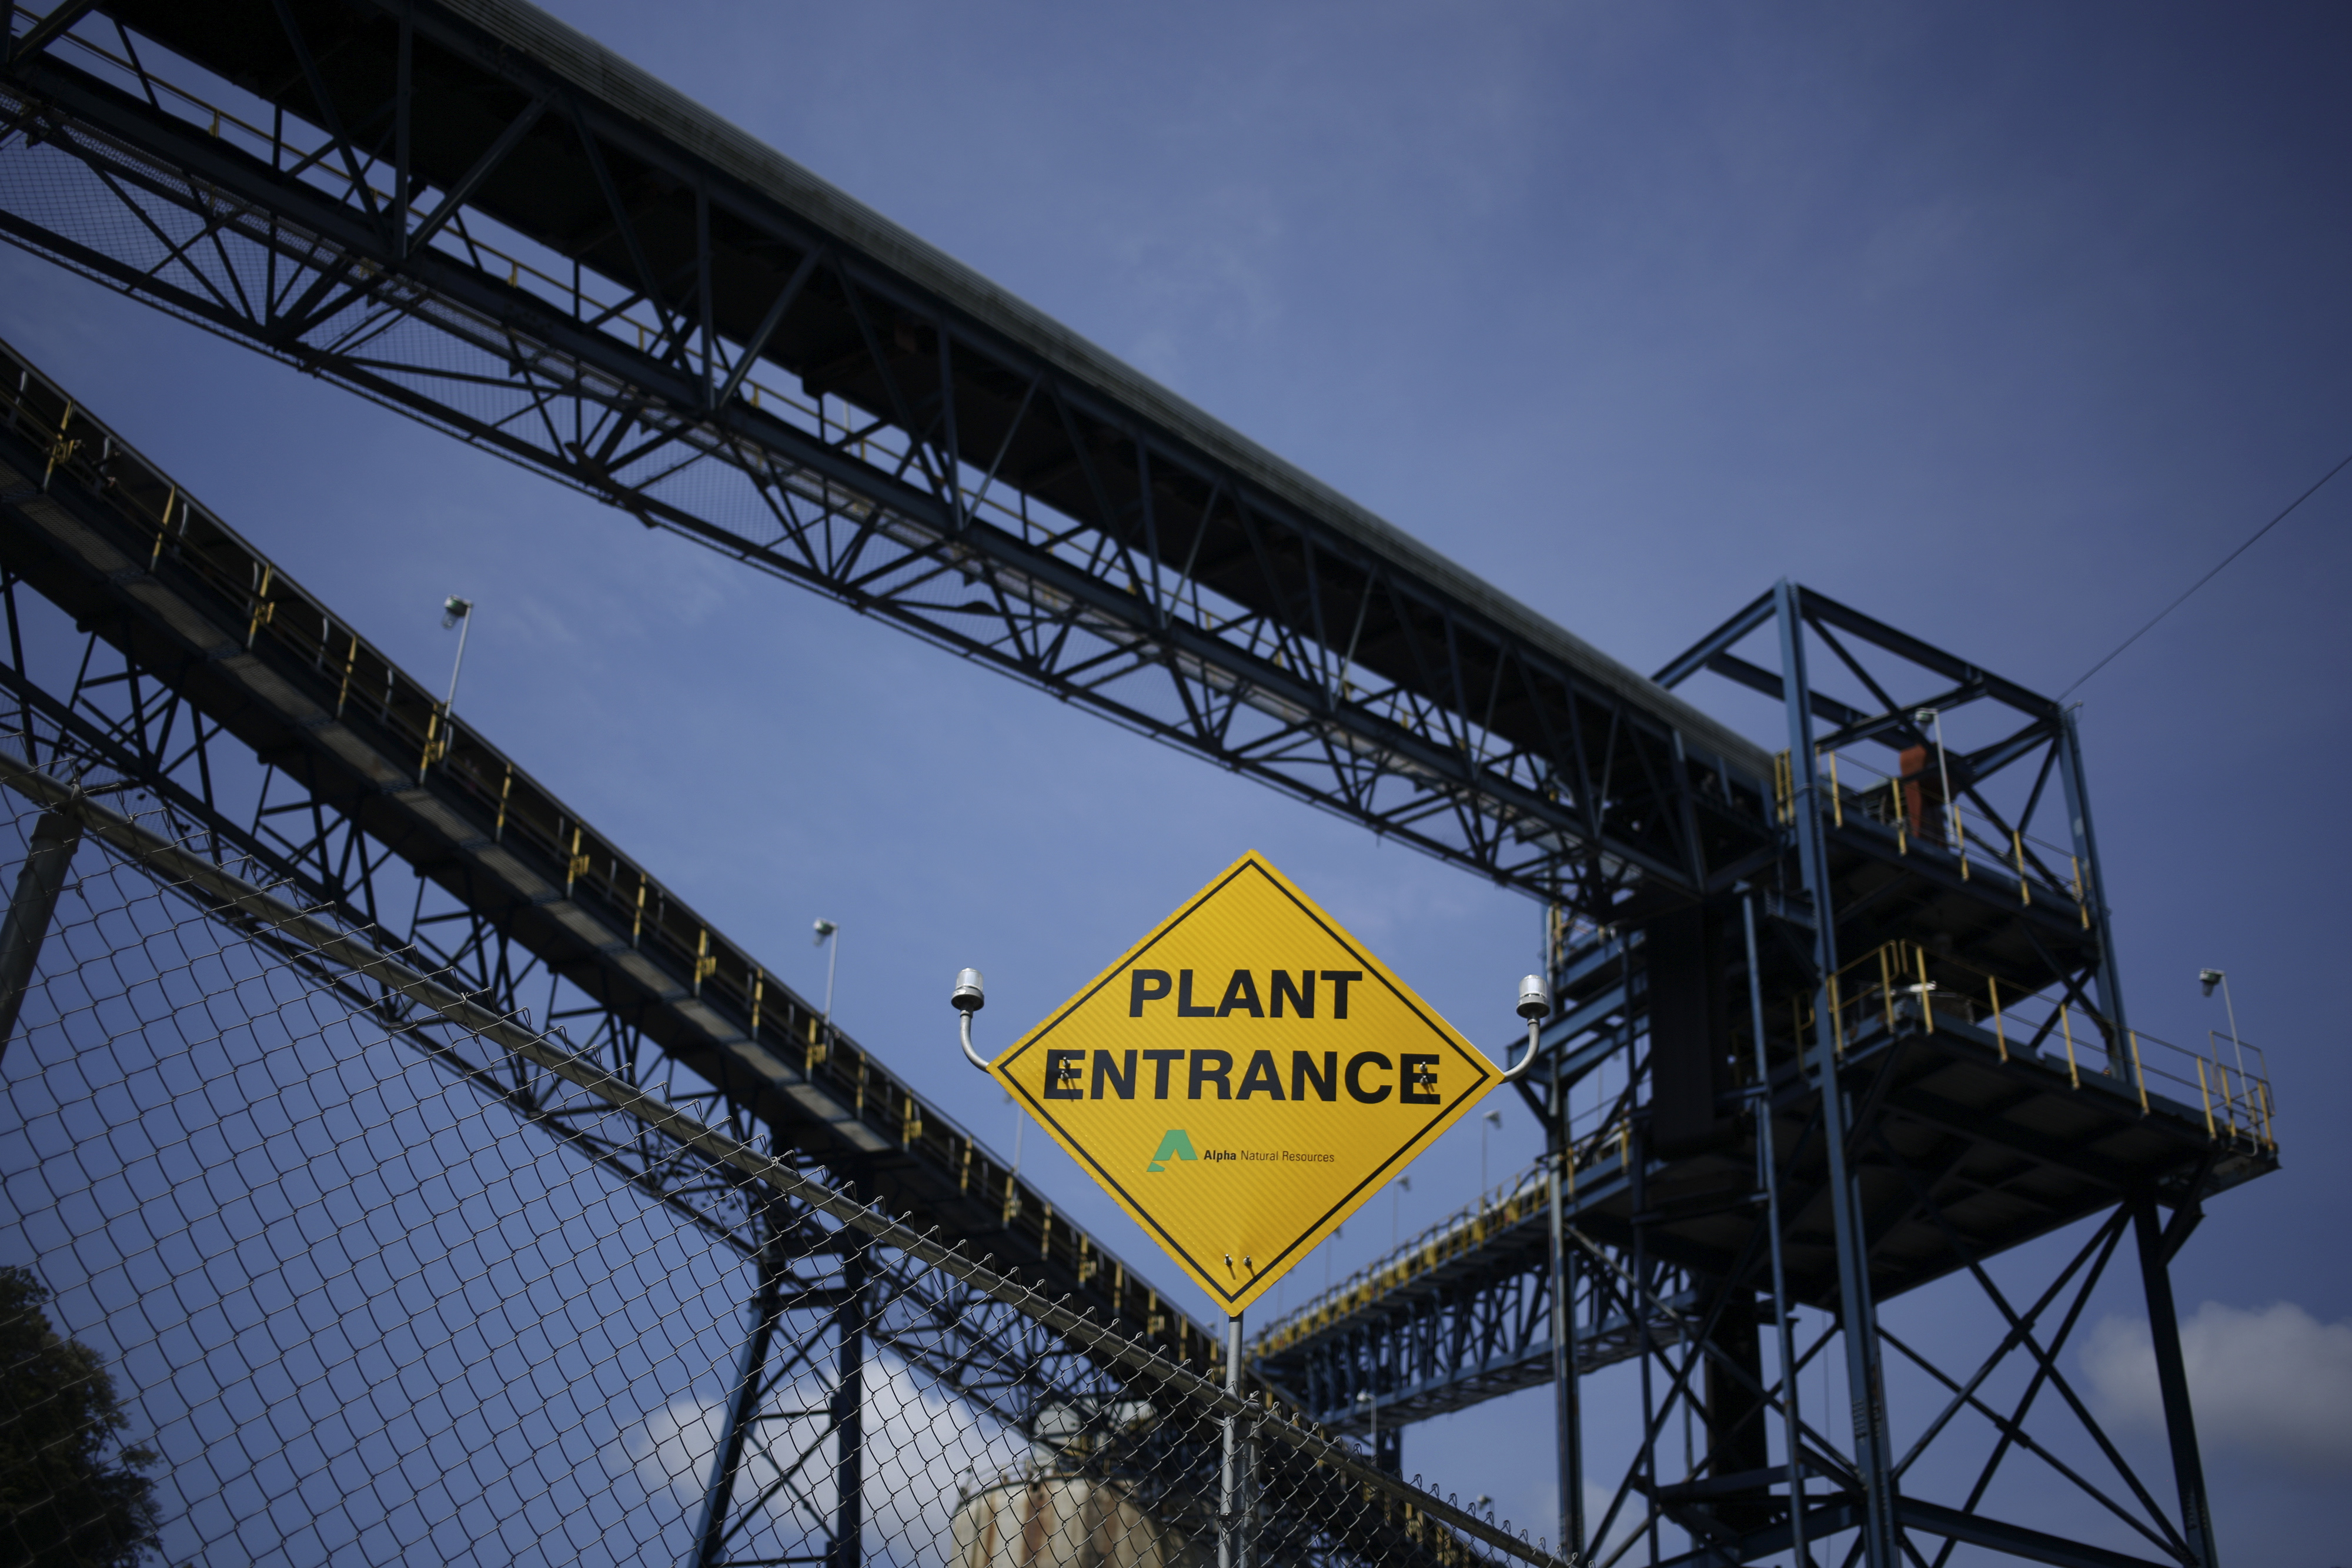 Coal Industry Facing Downturn With New EPA Rules And Alpha Natural Resources Bankruptcy